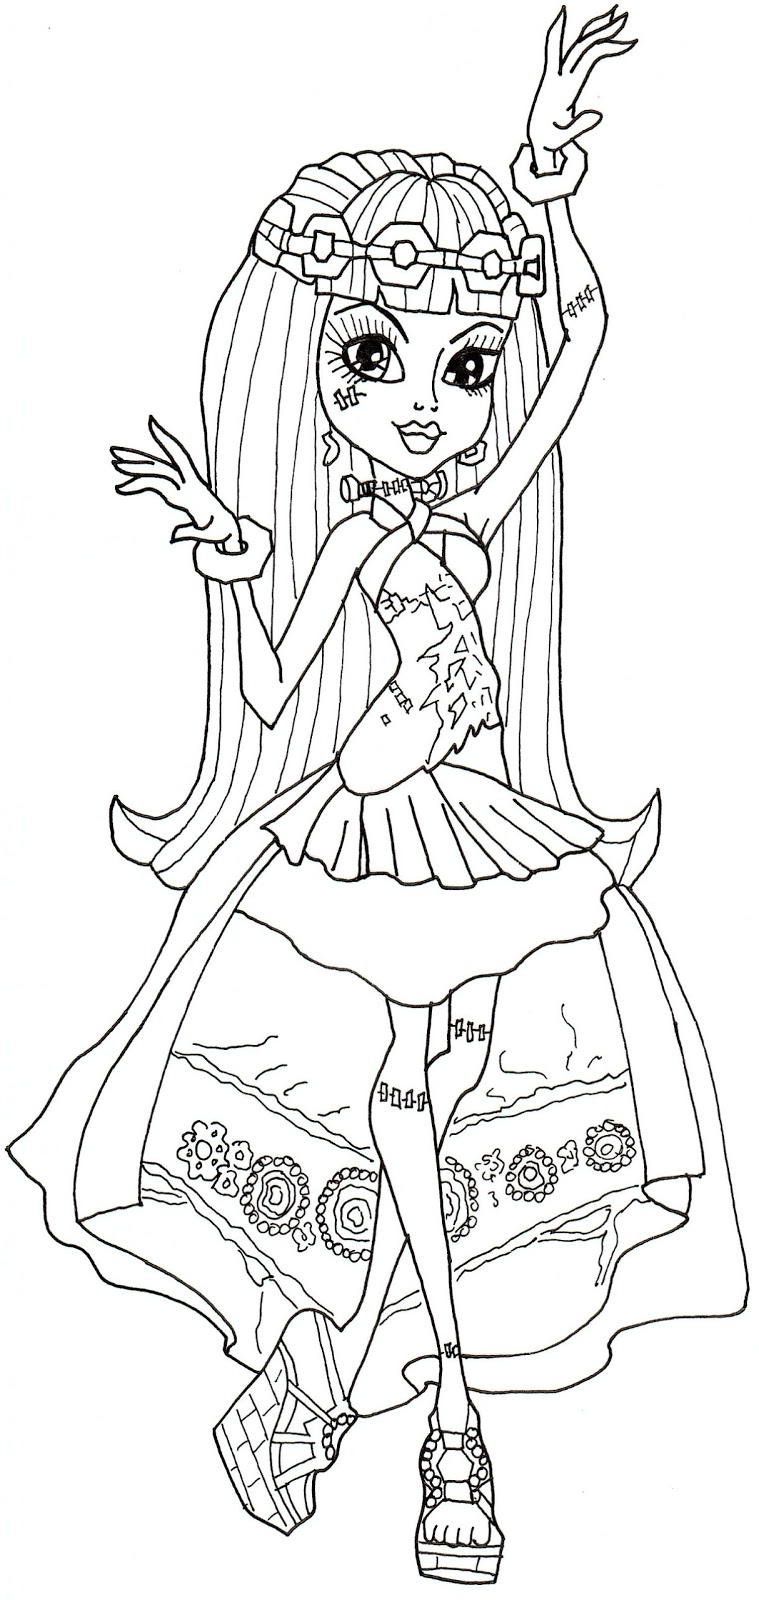 Free printable monster high coloring pages june 2013 for Monster high color pages free